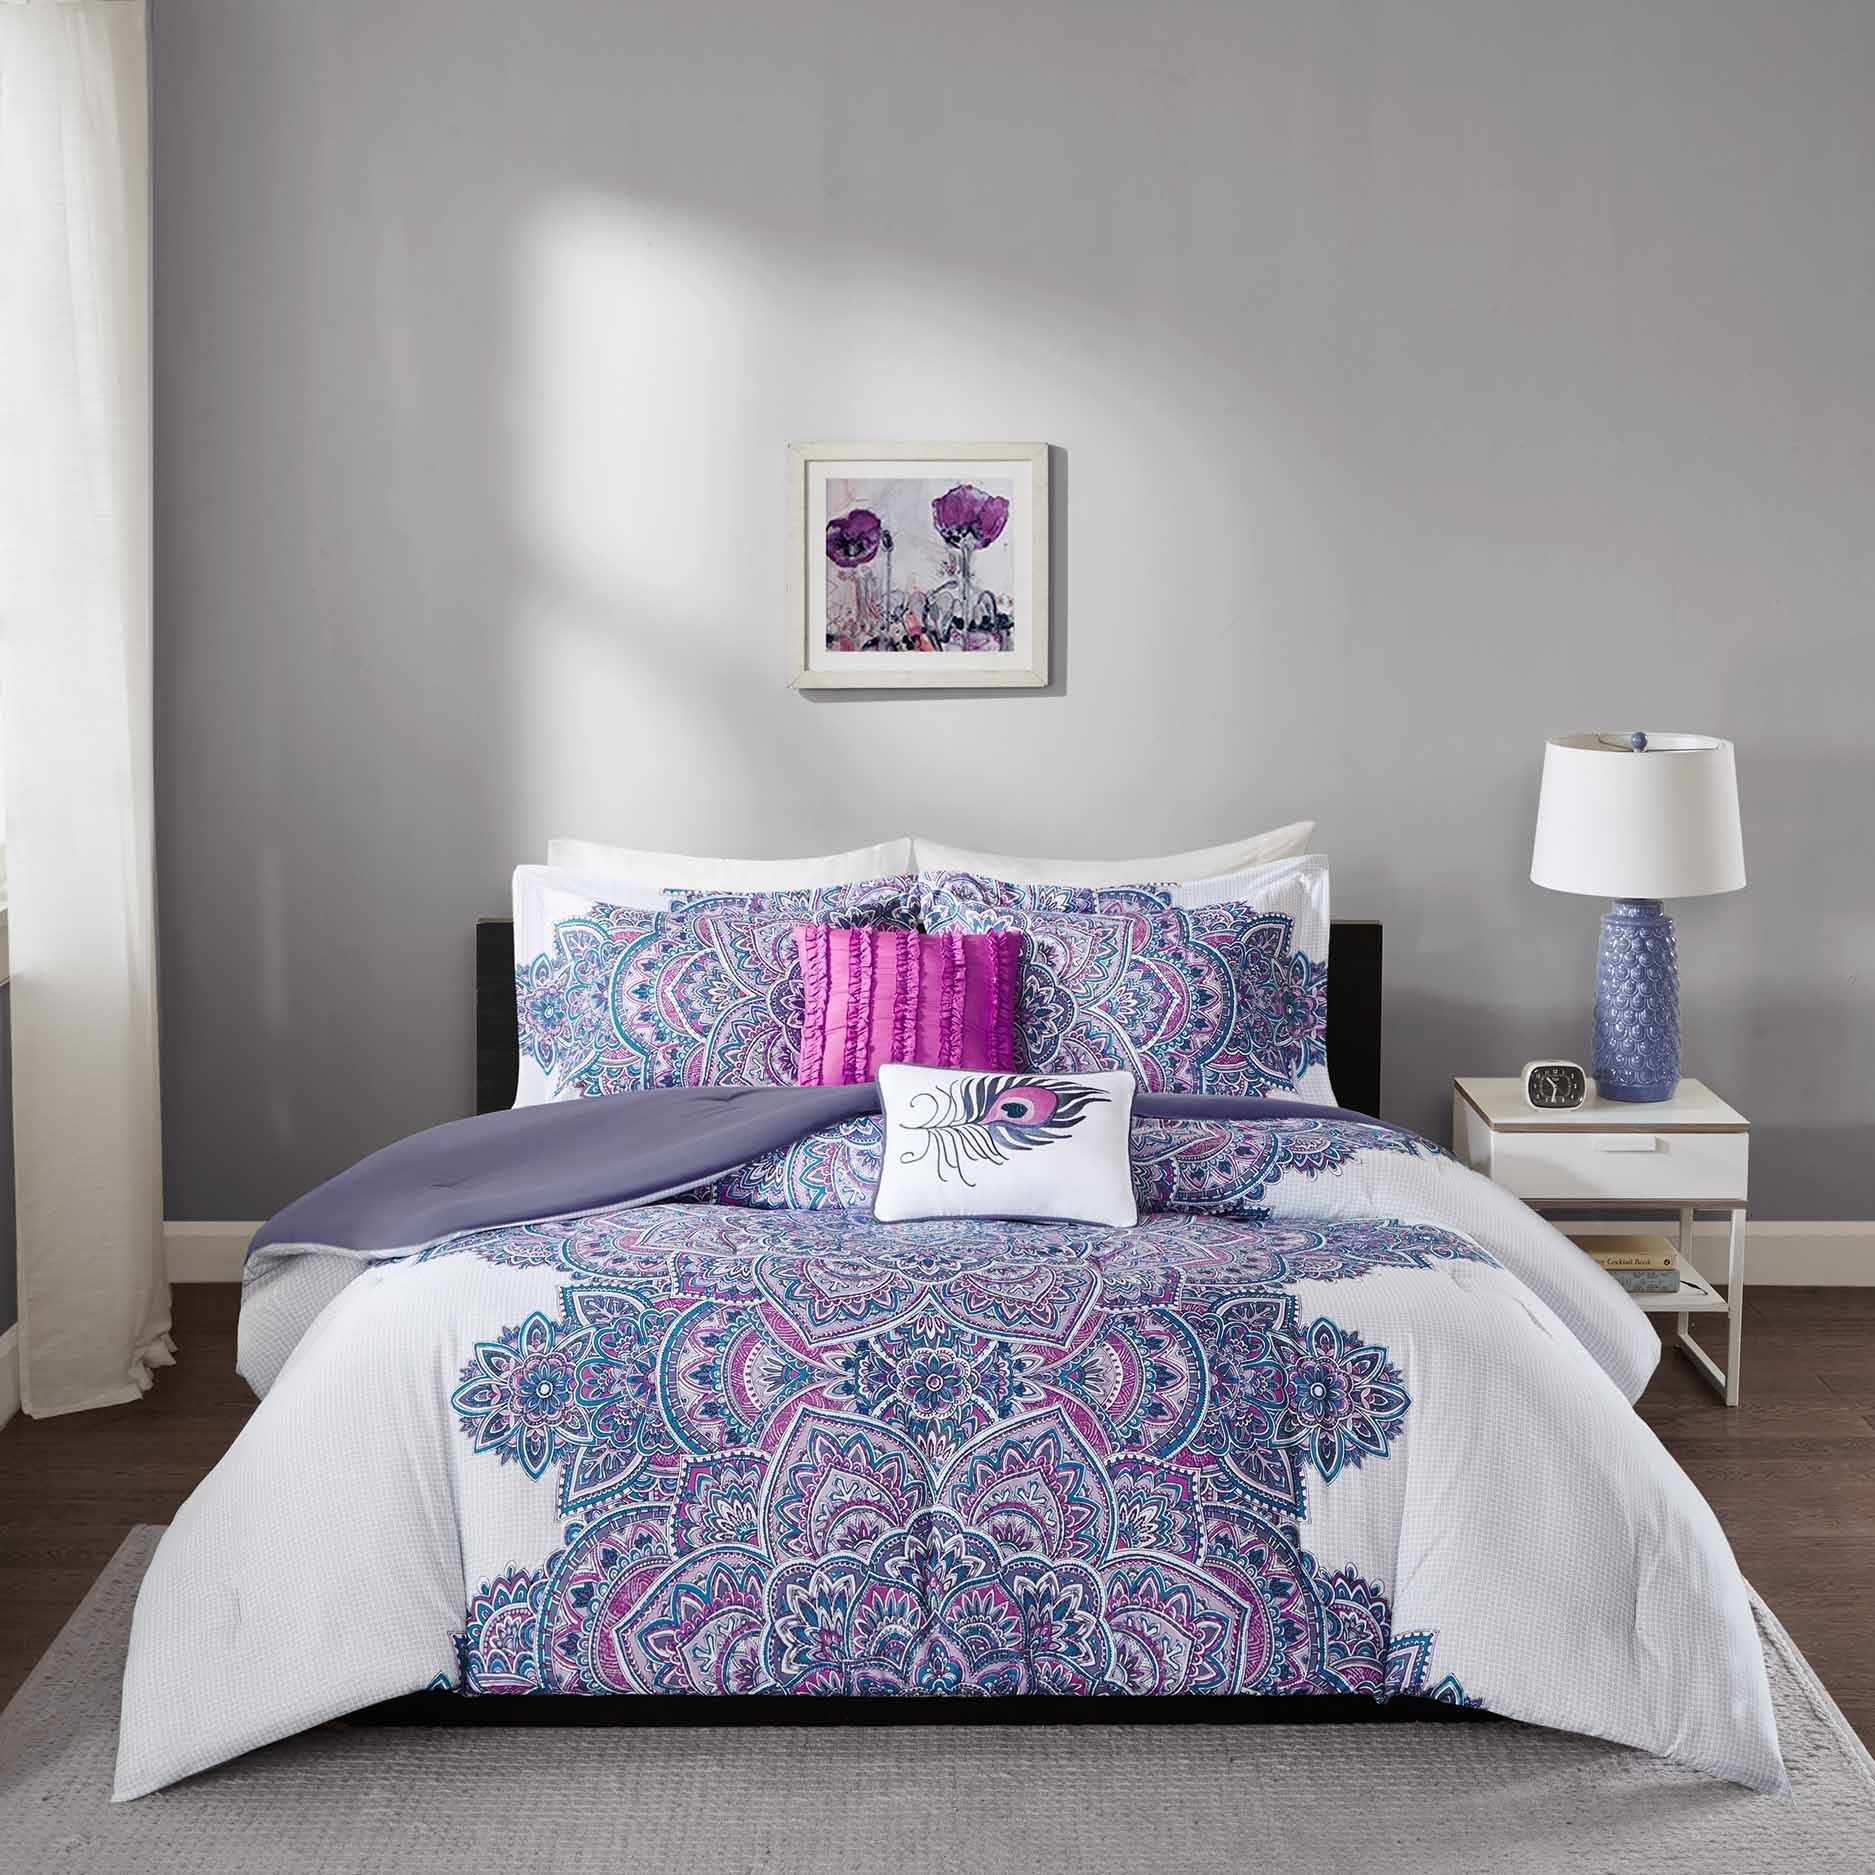 embroidery itm ivory gray pc king purple striped stripe comforter applique lilac set violet floral